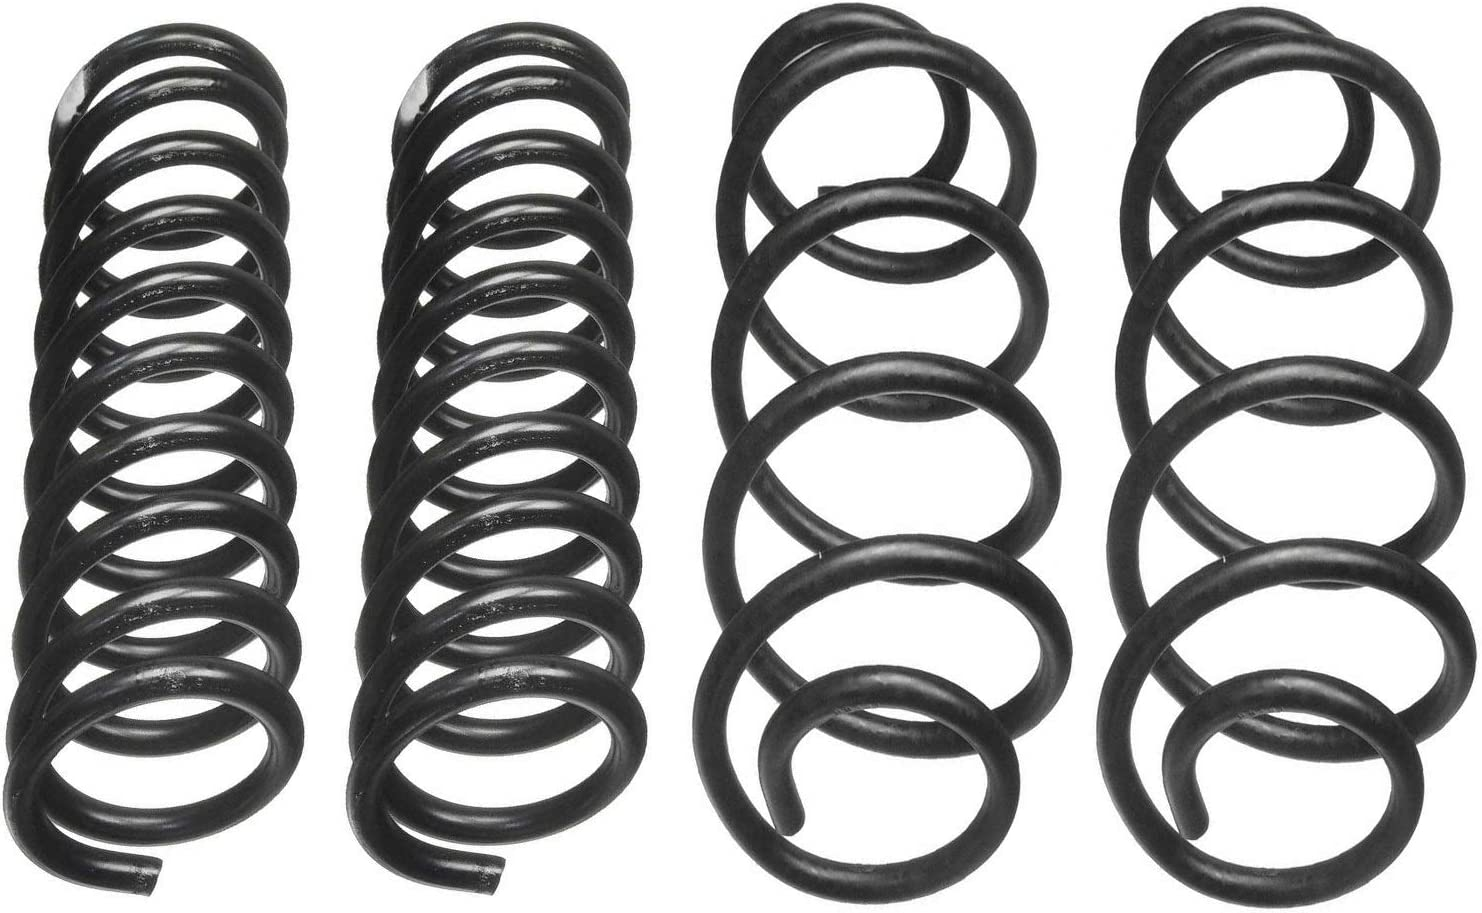 Lesjofors Front Rear Coil Springs Kit Louisville-Jefferson County Mall Ford Gran For Ran Torino Max 51% OFF